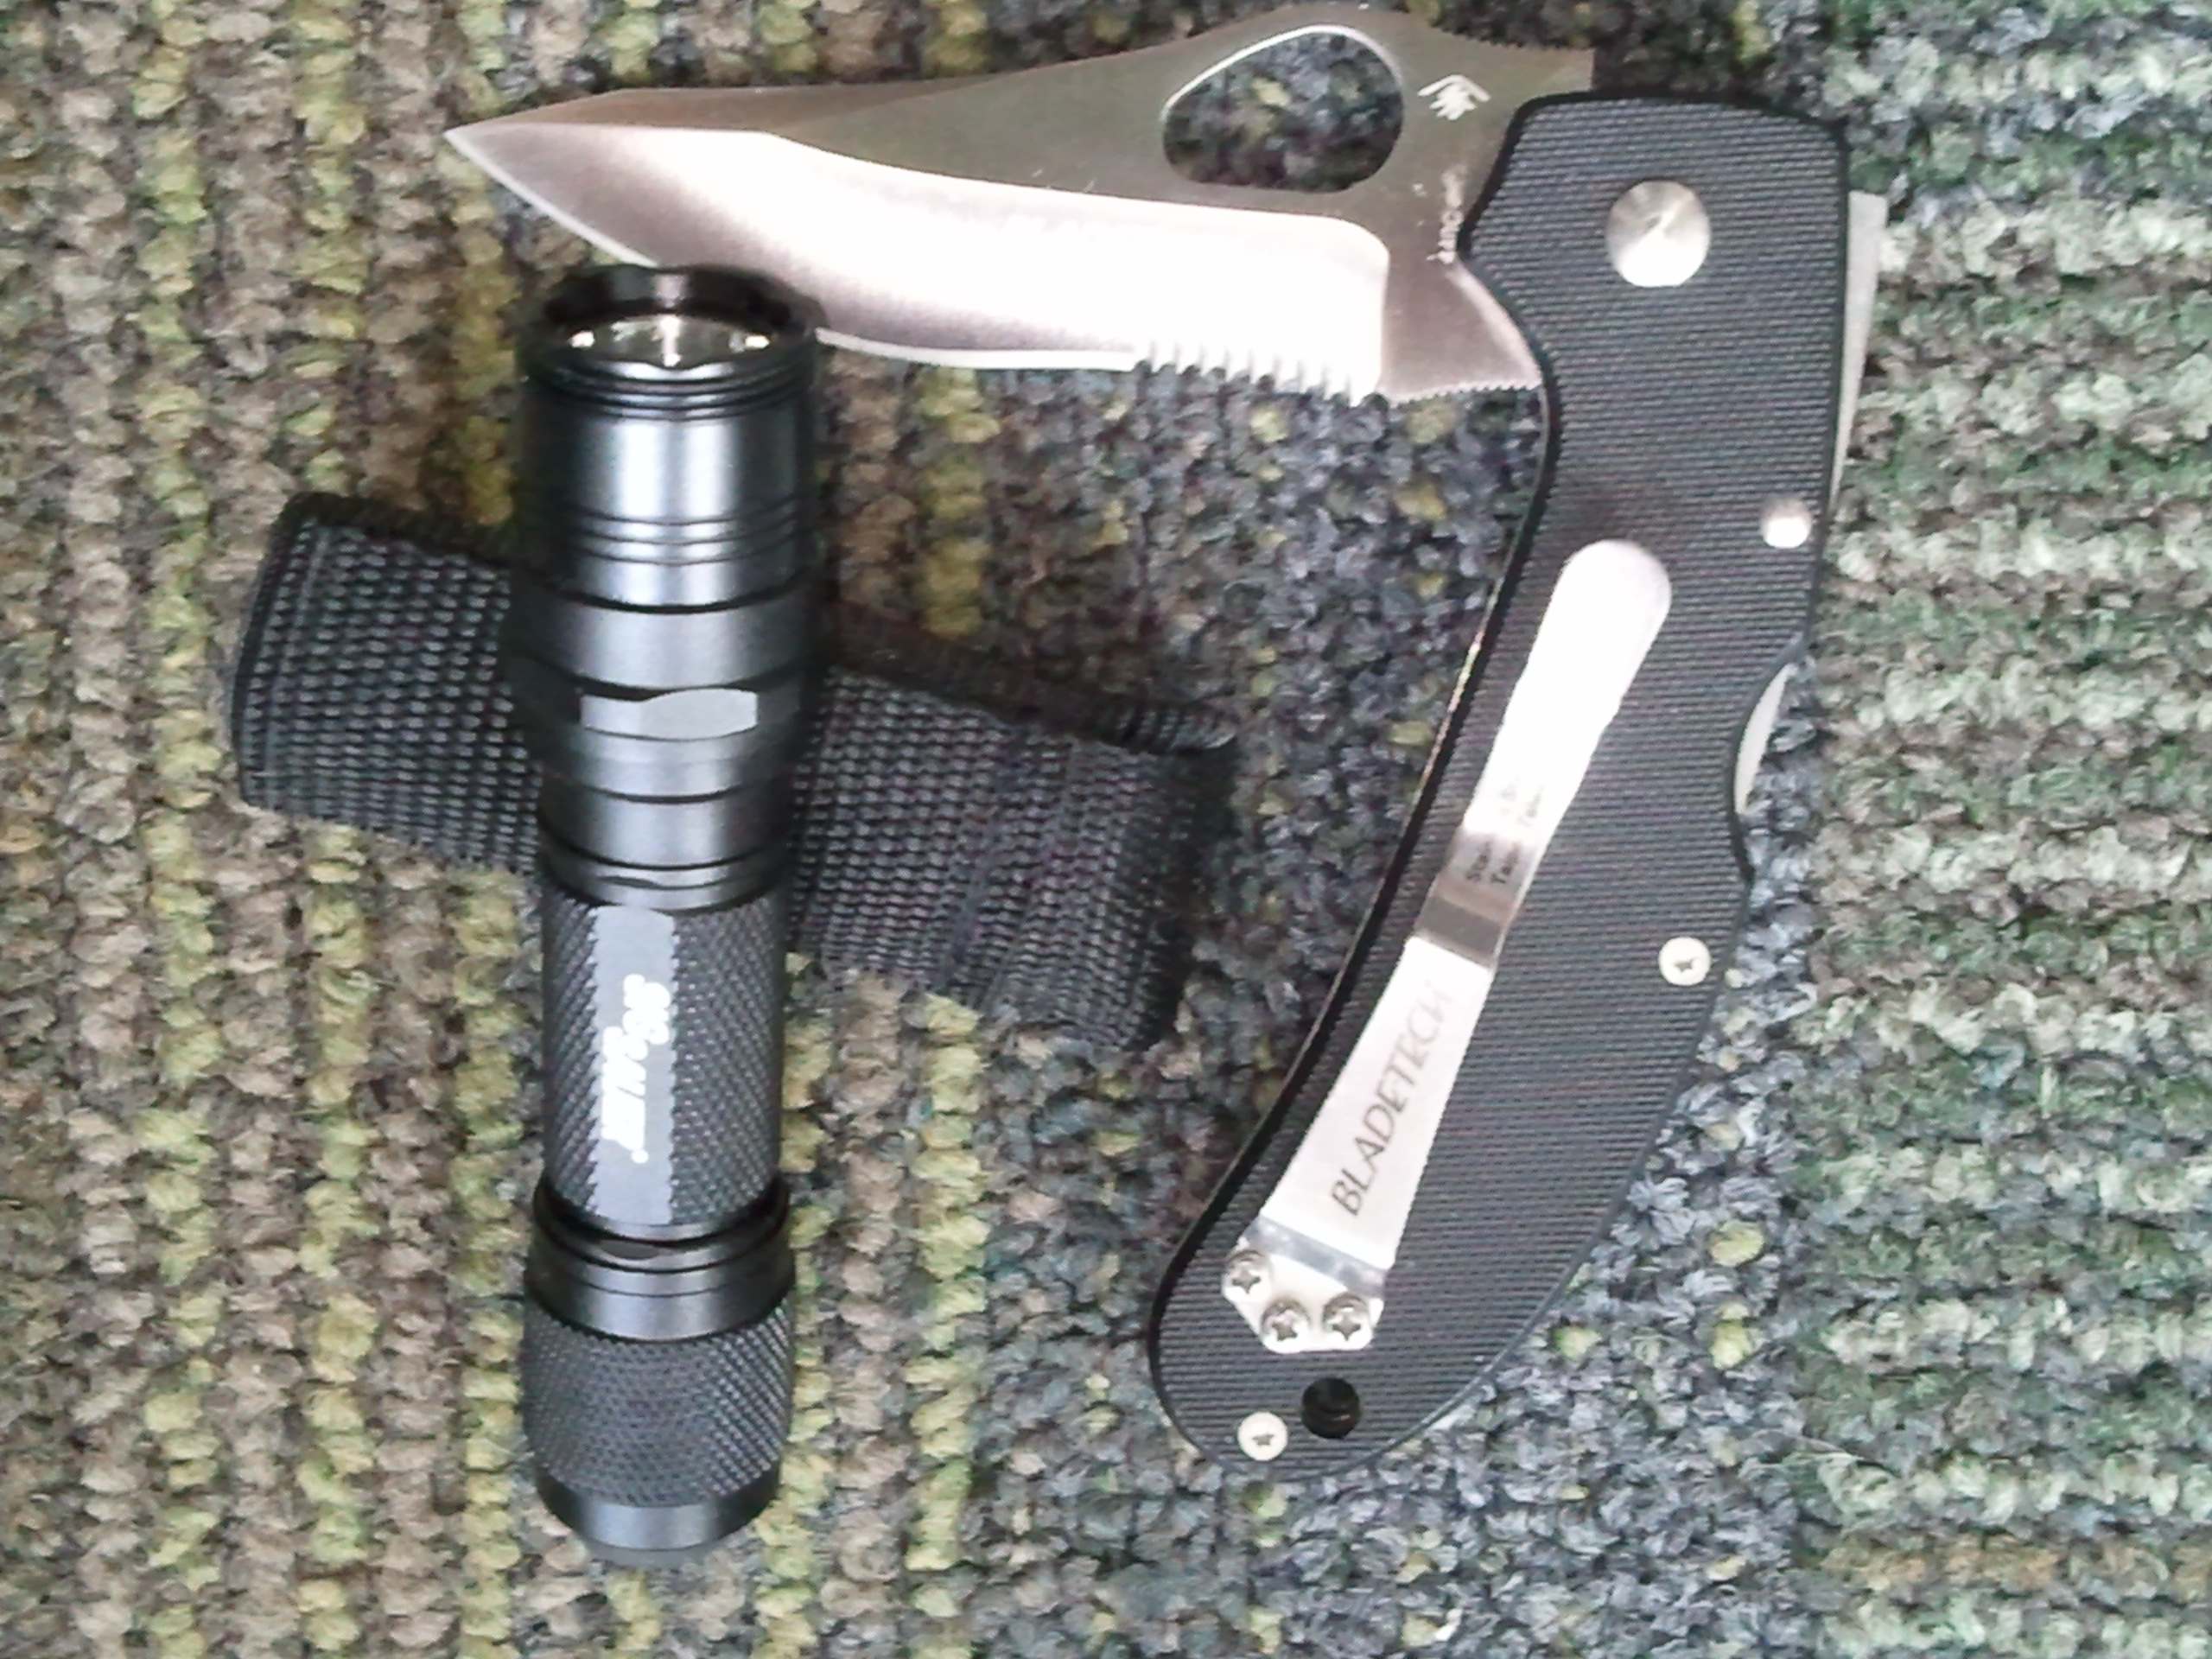 Small flashlight and pocket knife for survival kit